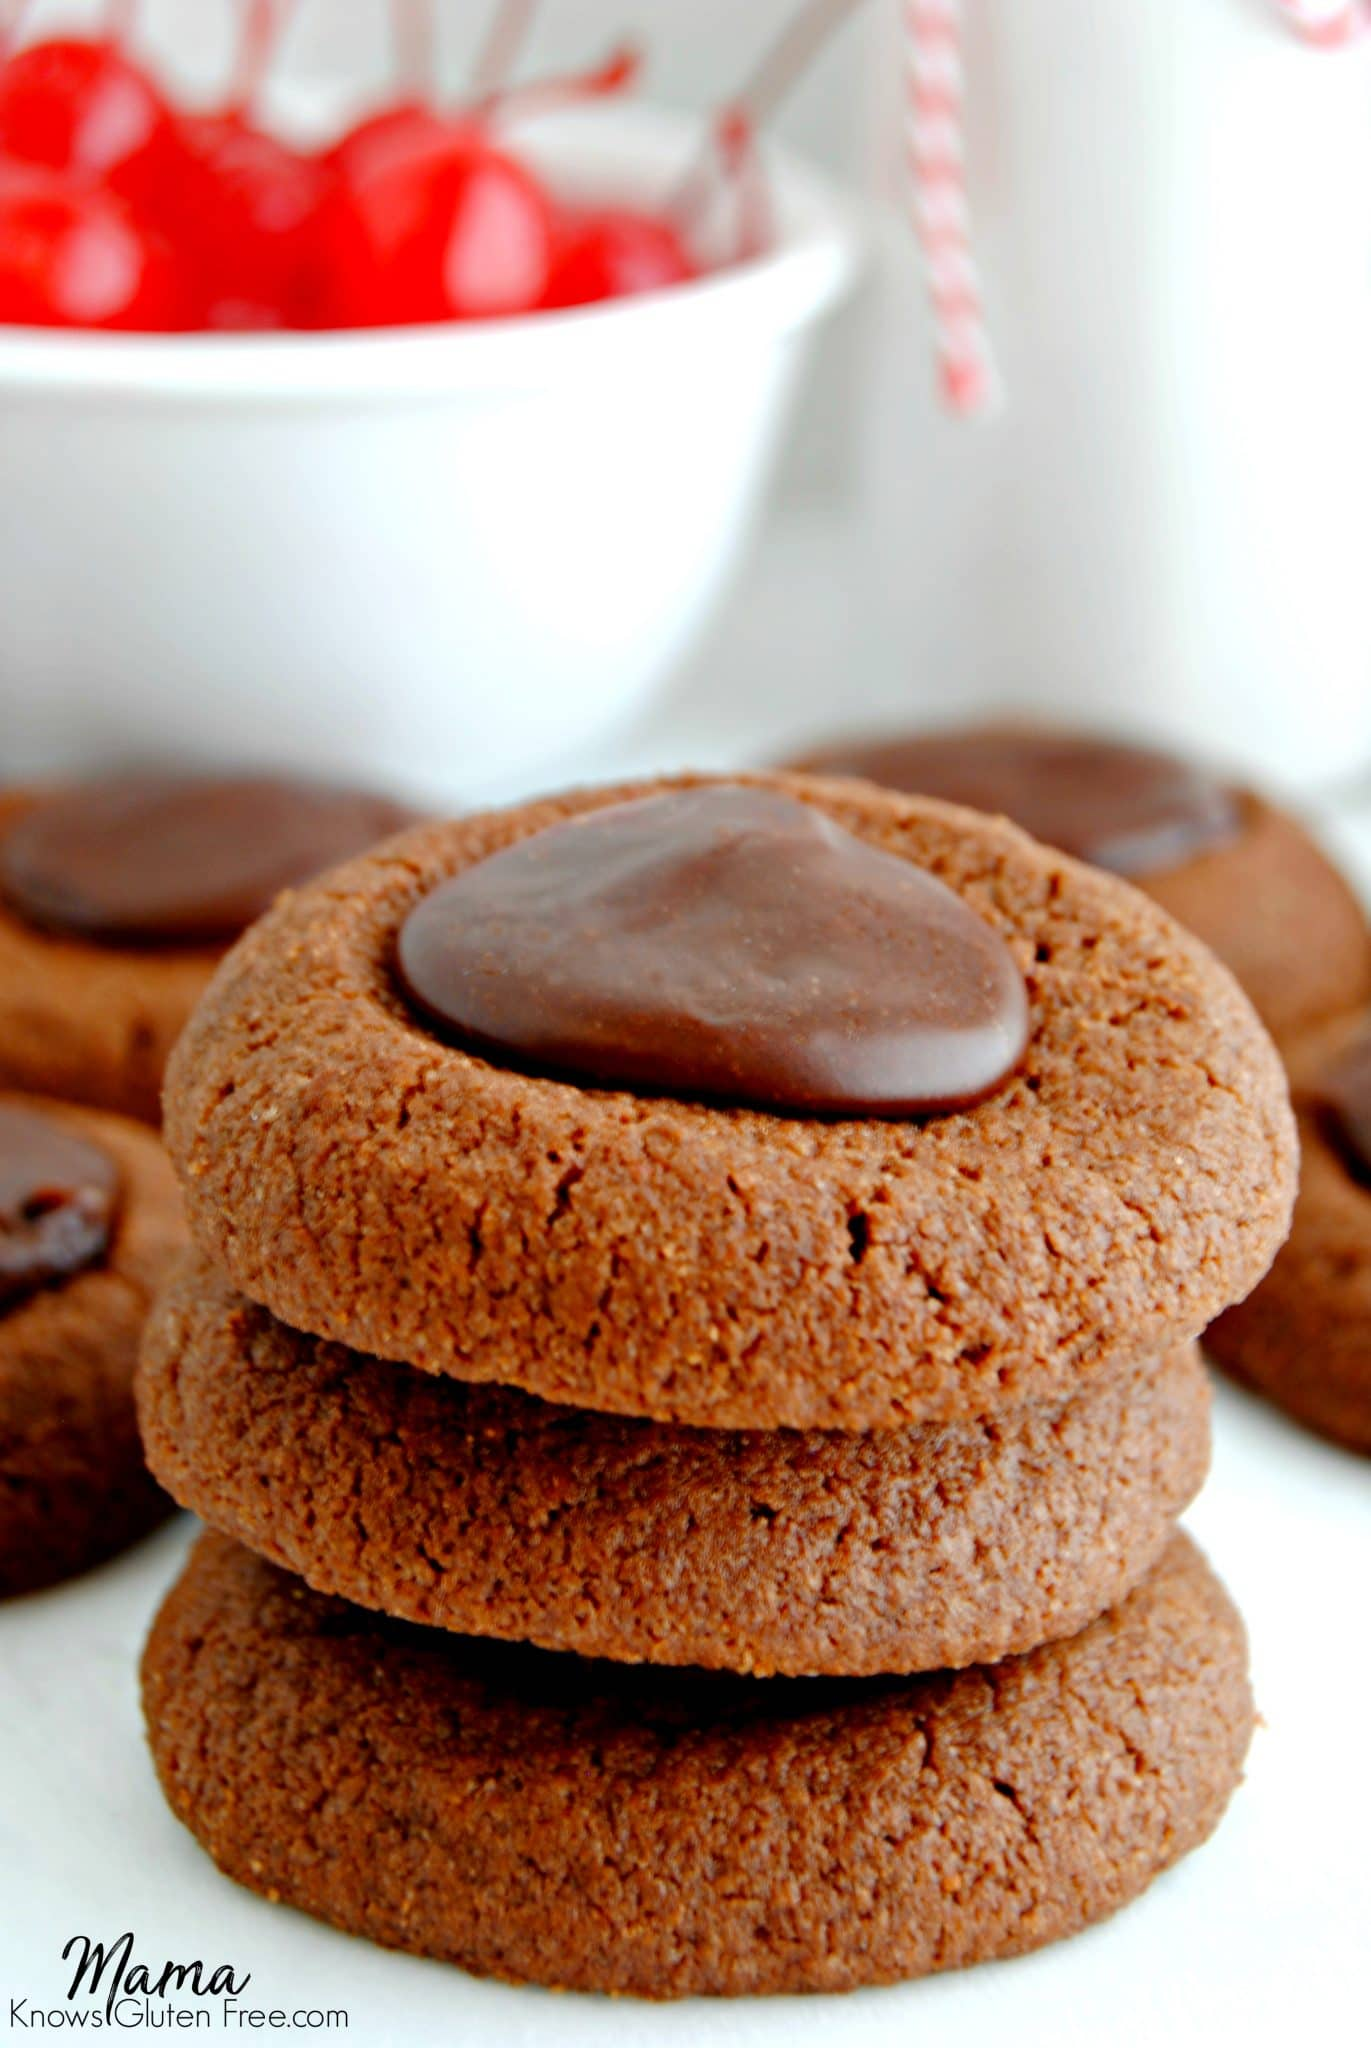 Gluten-Free Chocolate Cherry Thumbprint Cookies stacked on top of each other with cherries in the background